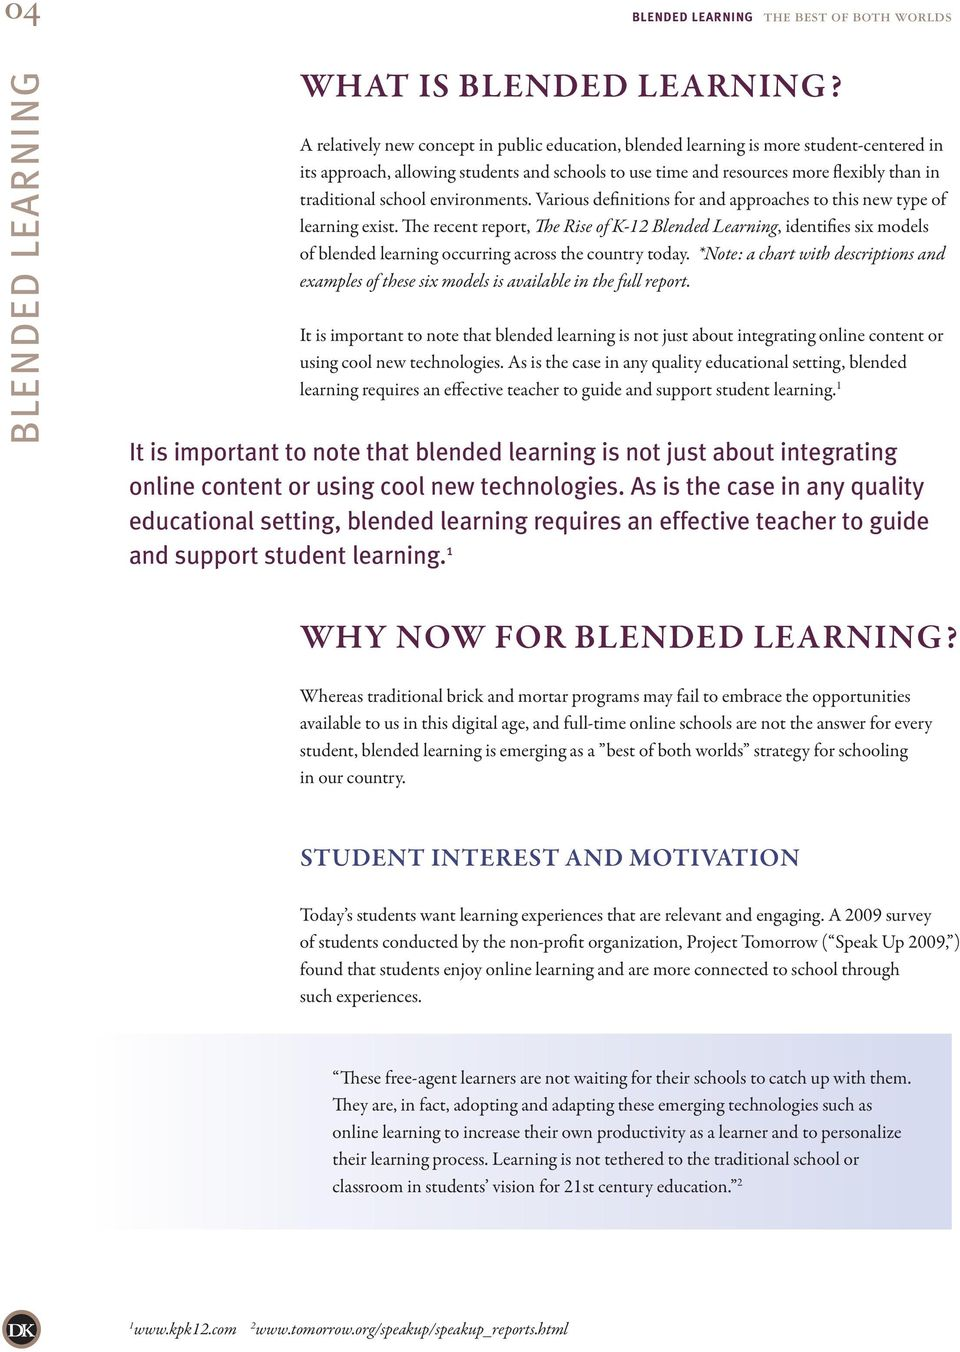 school environments. Various definitions for and approaches to this new type of learning exist.